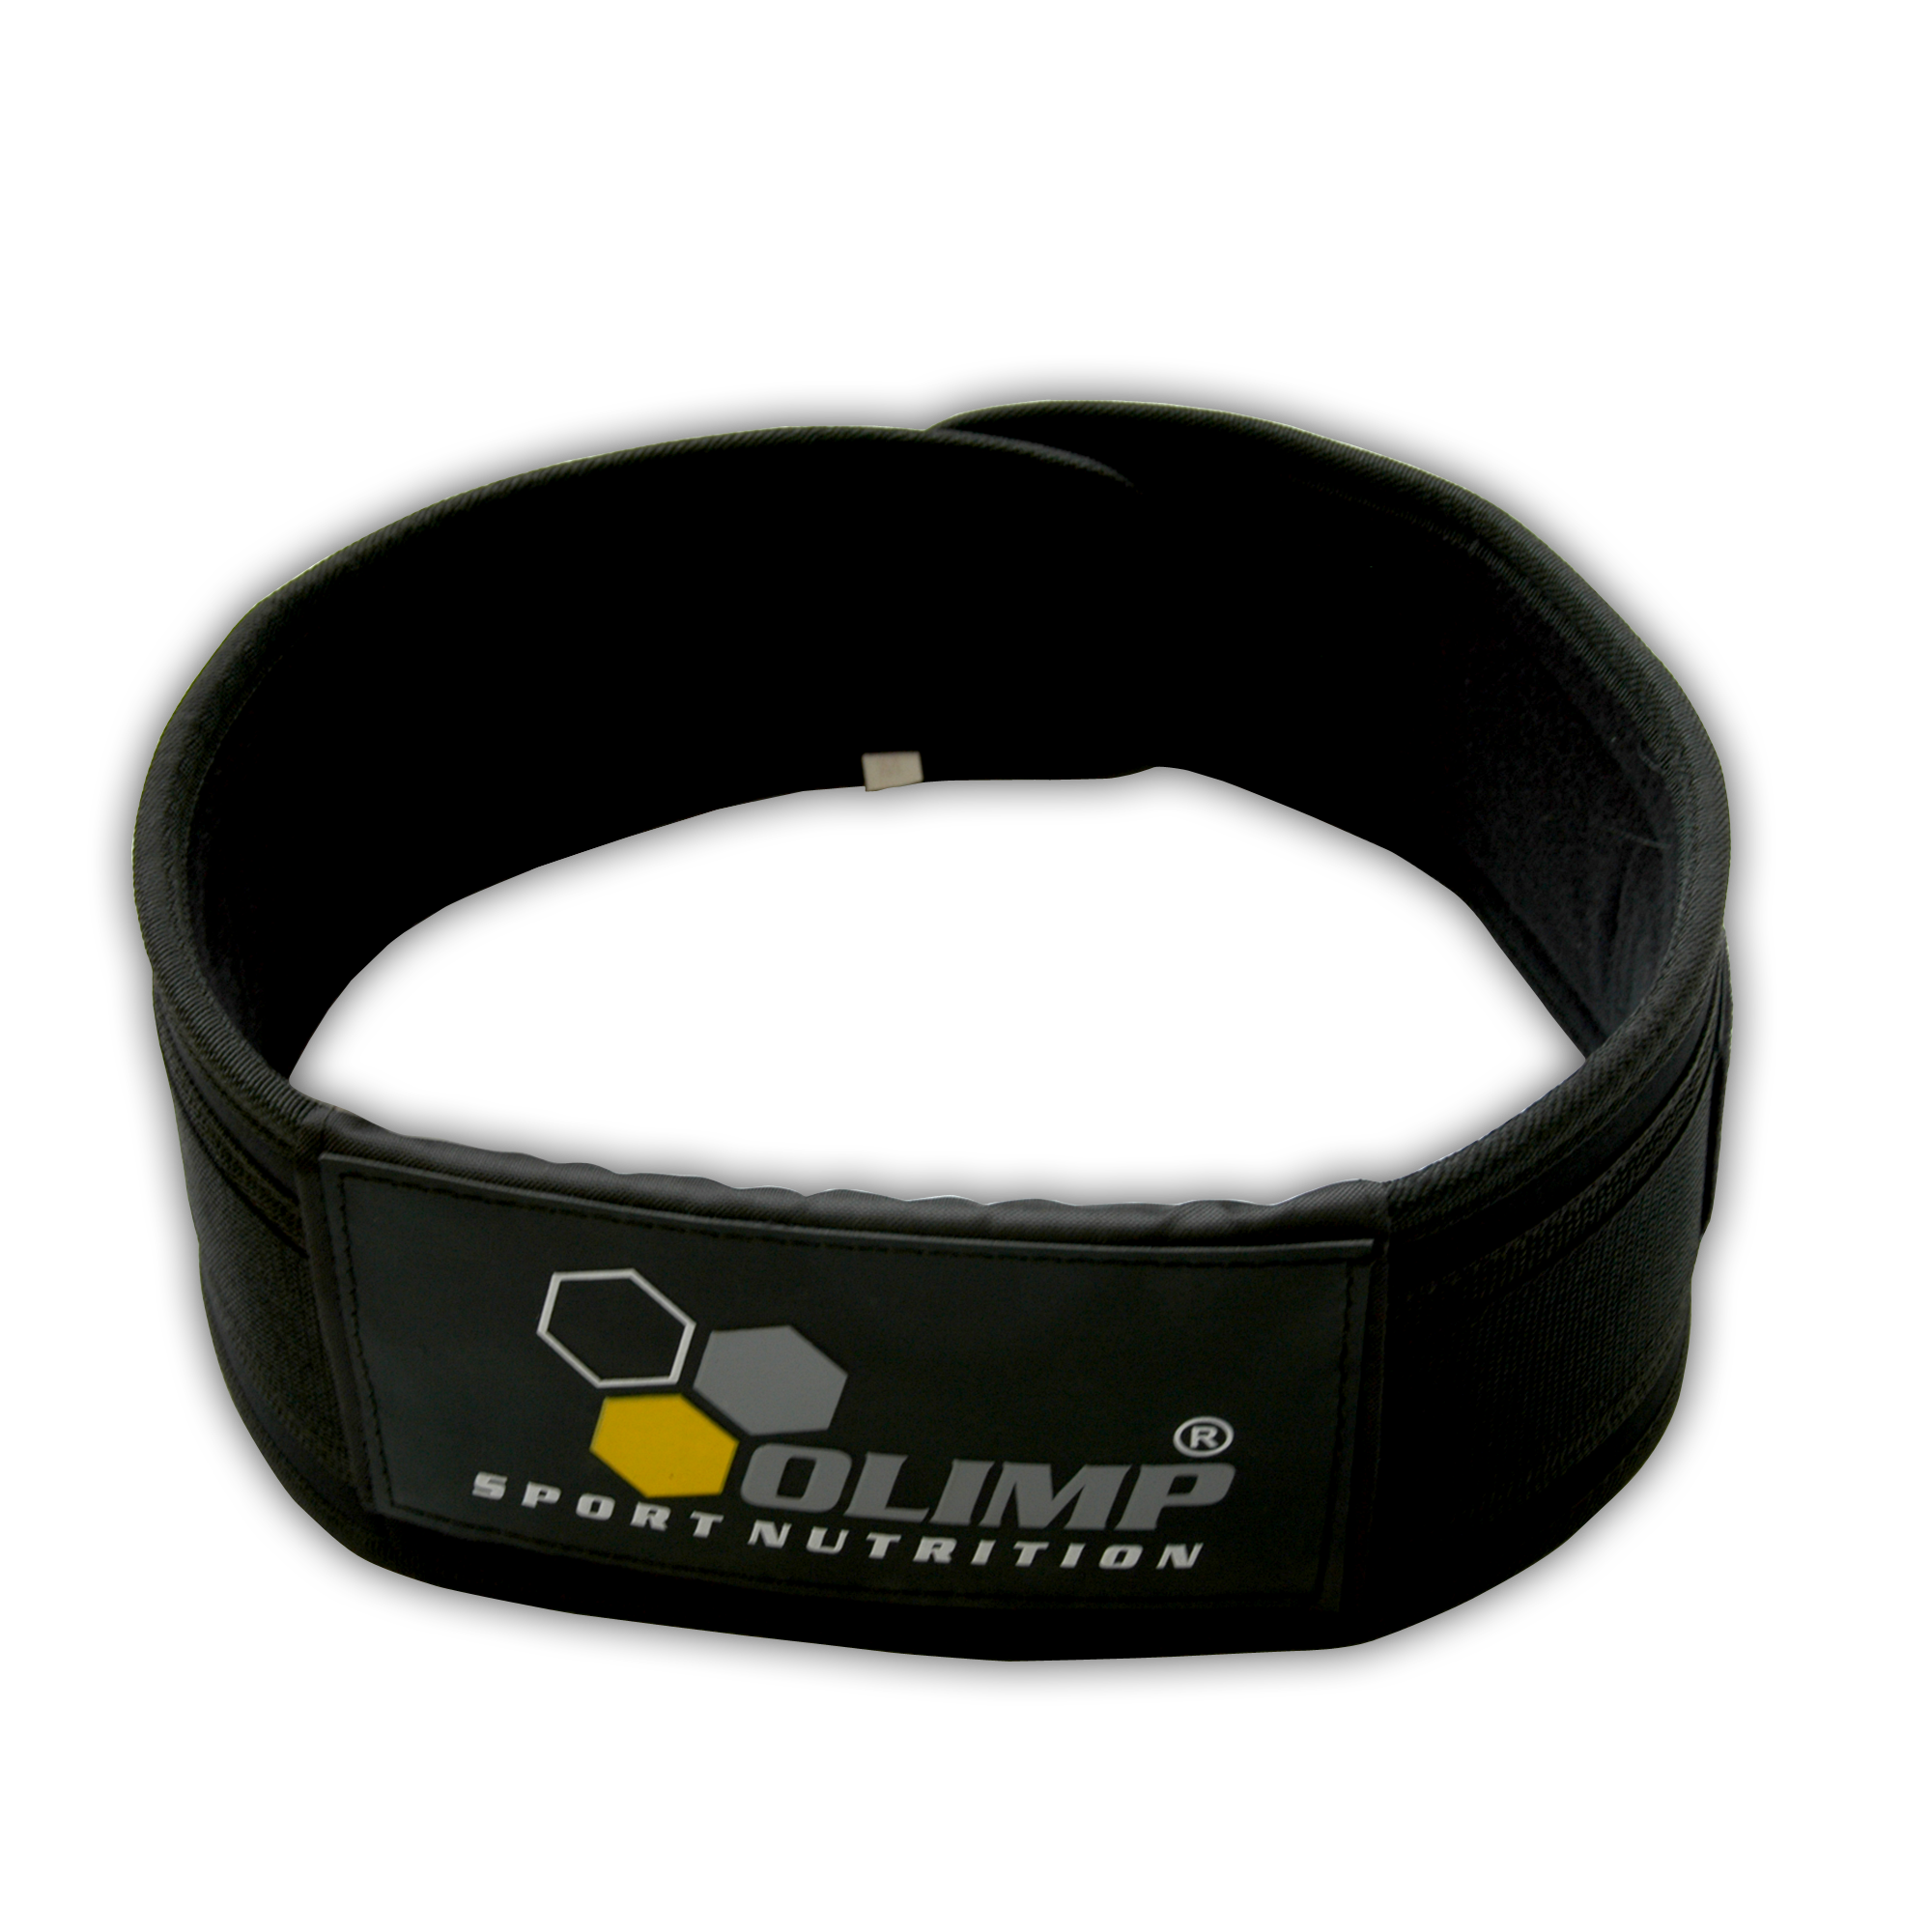 Olimp Sport Nutrition Training Hardcore Profi Belt 6